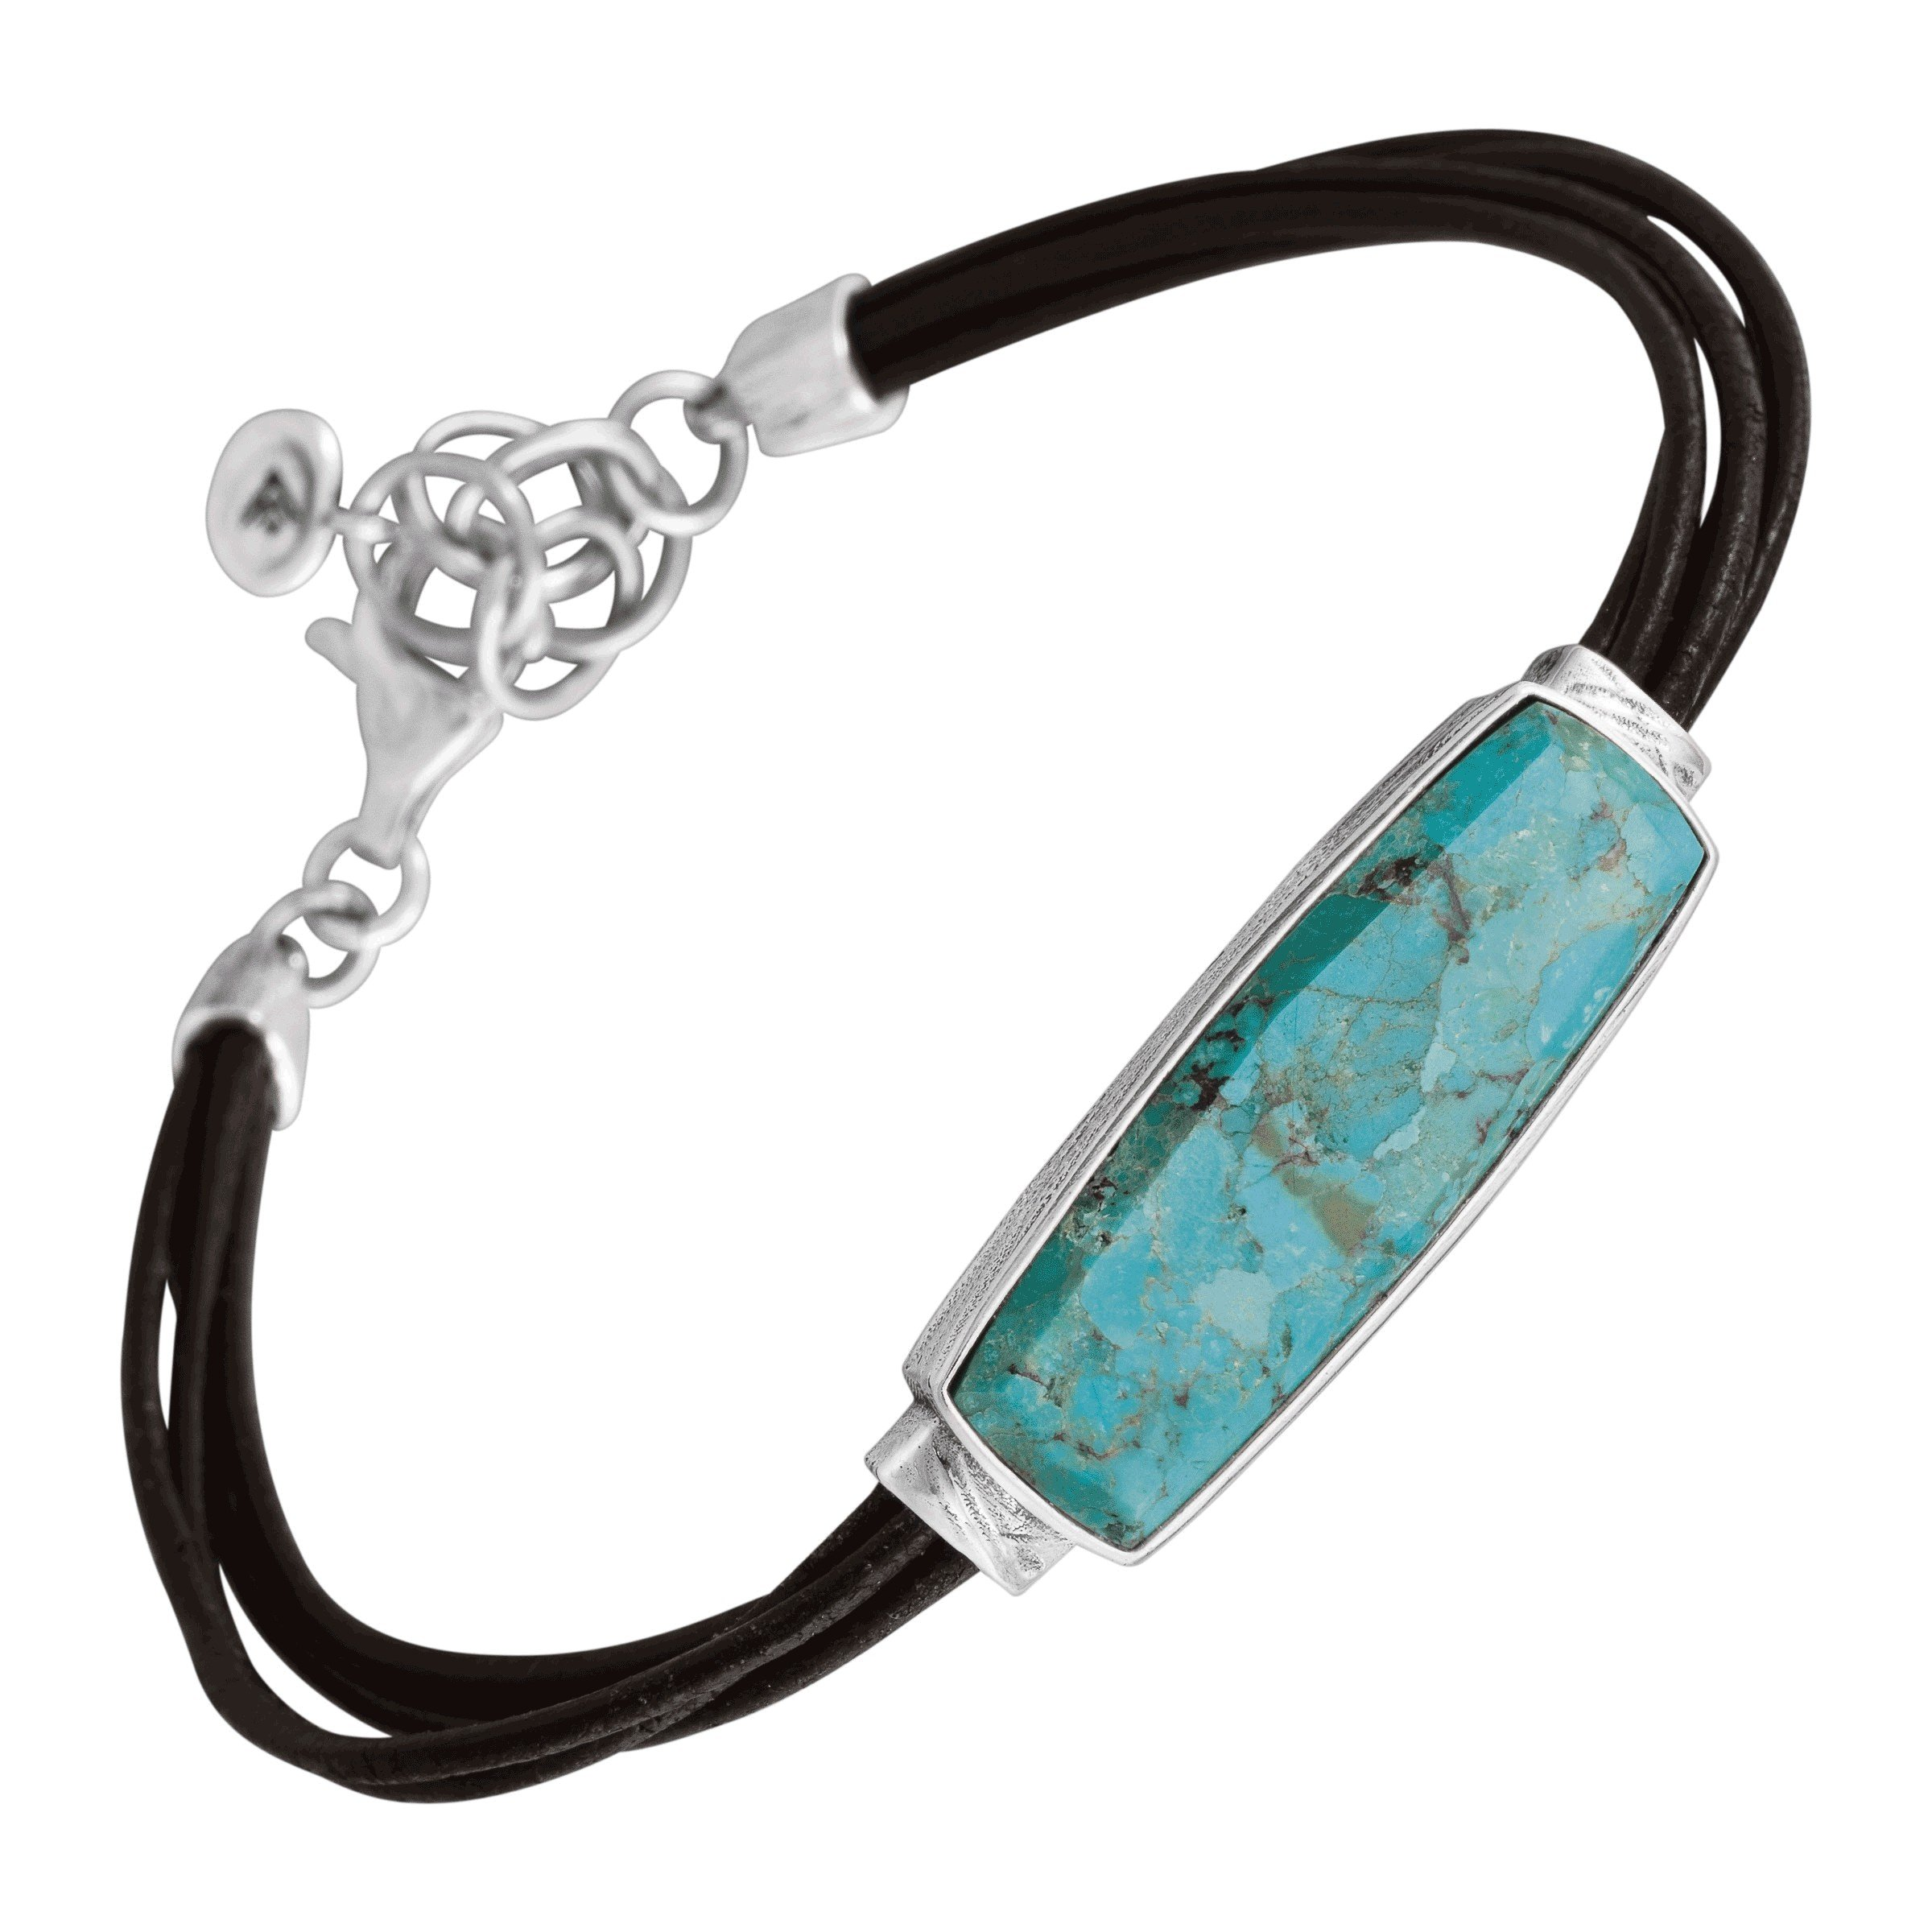 Silpada 'True Colors' Compressed Turquoise Link Bracelet in Genuine Leather and Sterling Silver, 7'' + 1'' Extender by Silpada